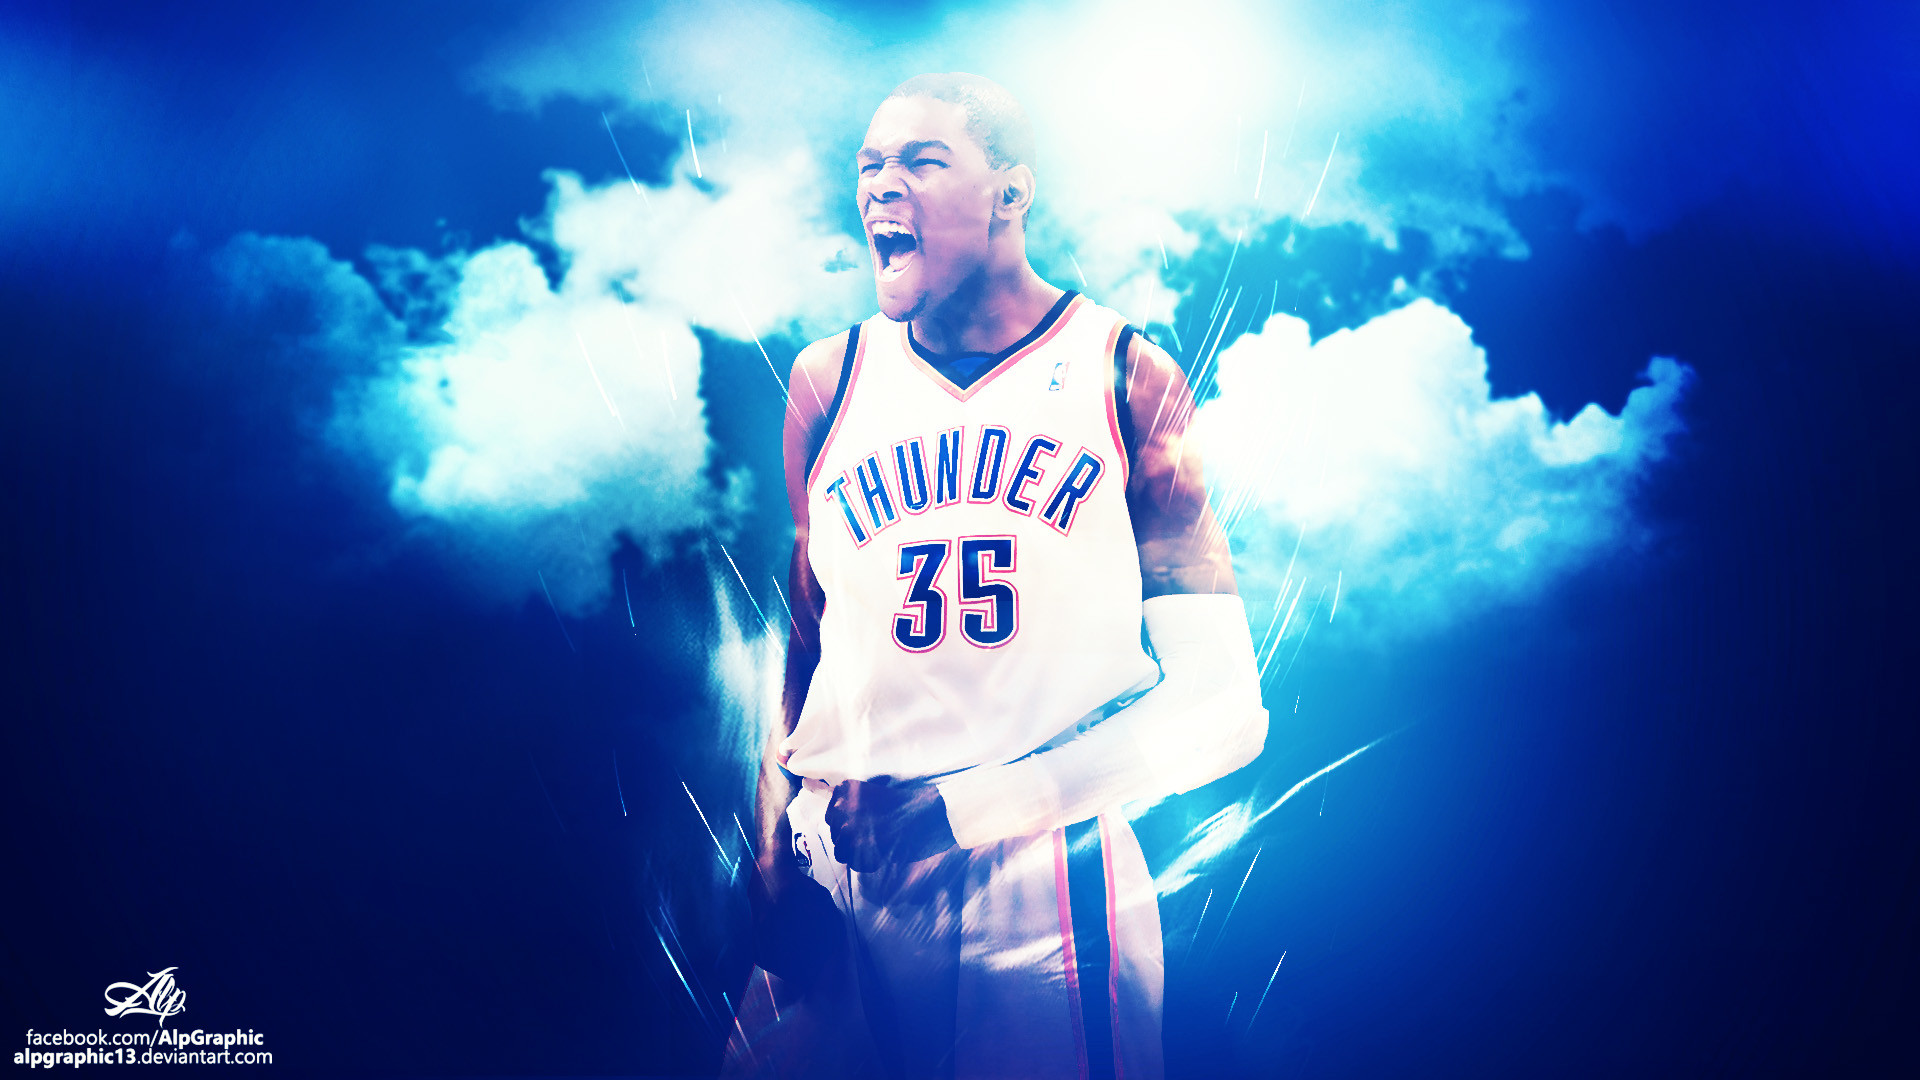 1920x1080 Download Xxxxx HD Video 3Gp Mp4 - pornwapi Kevin durant dunking wallpaper  2013